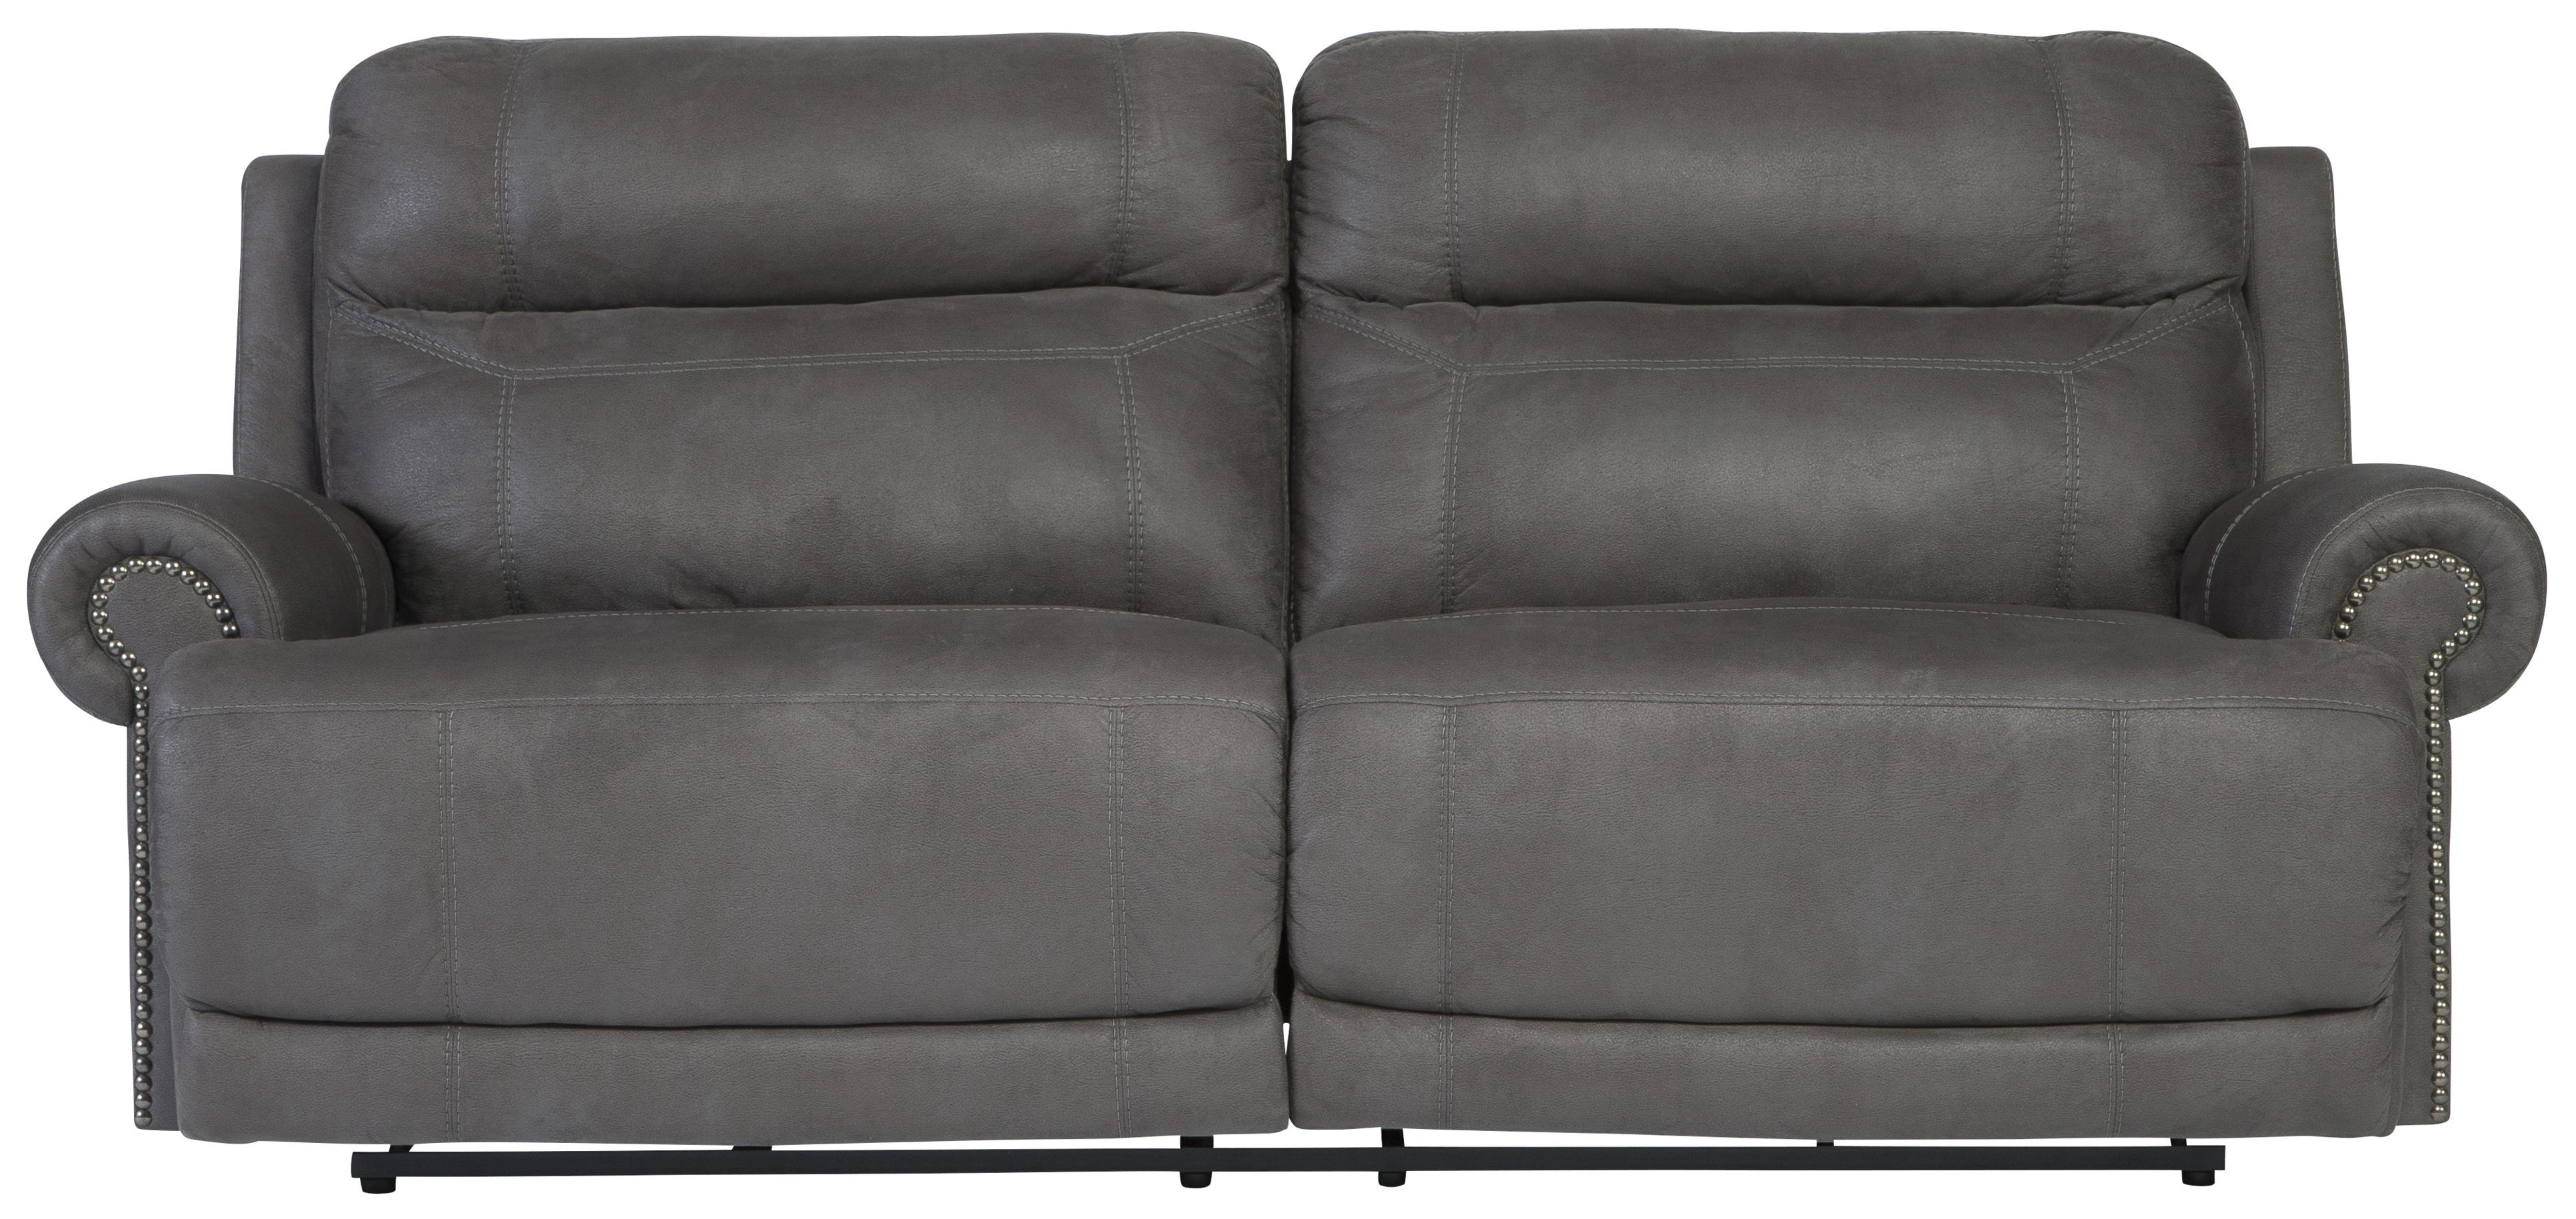 Popular 2 Seat Recliner Sofas Intended For Signature Designashley Austere – Gray 2 Seat Reclining Sofa (View 18 of 20)